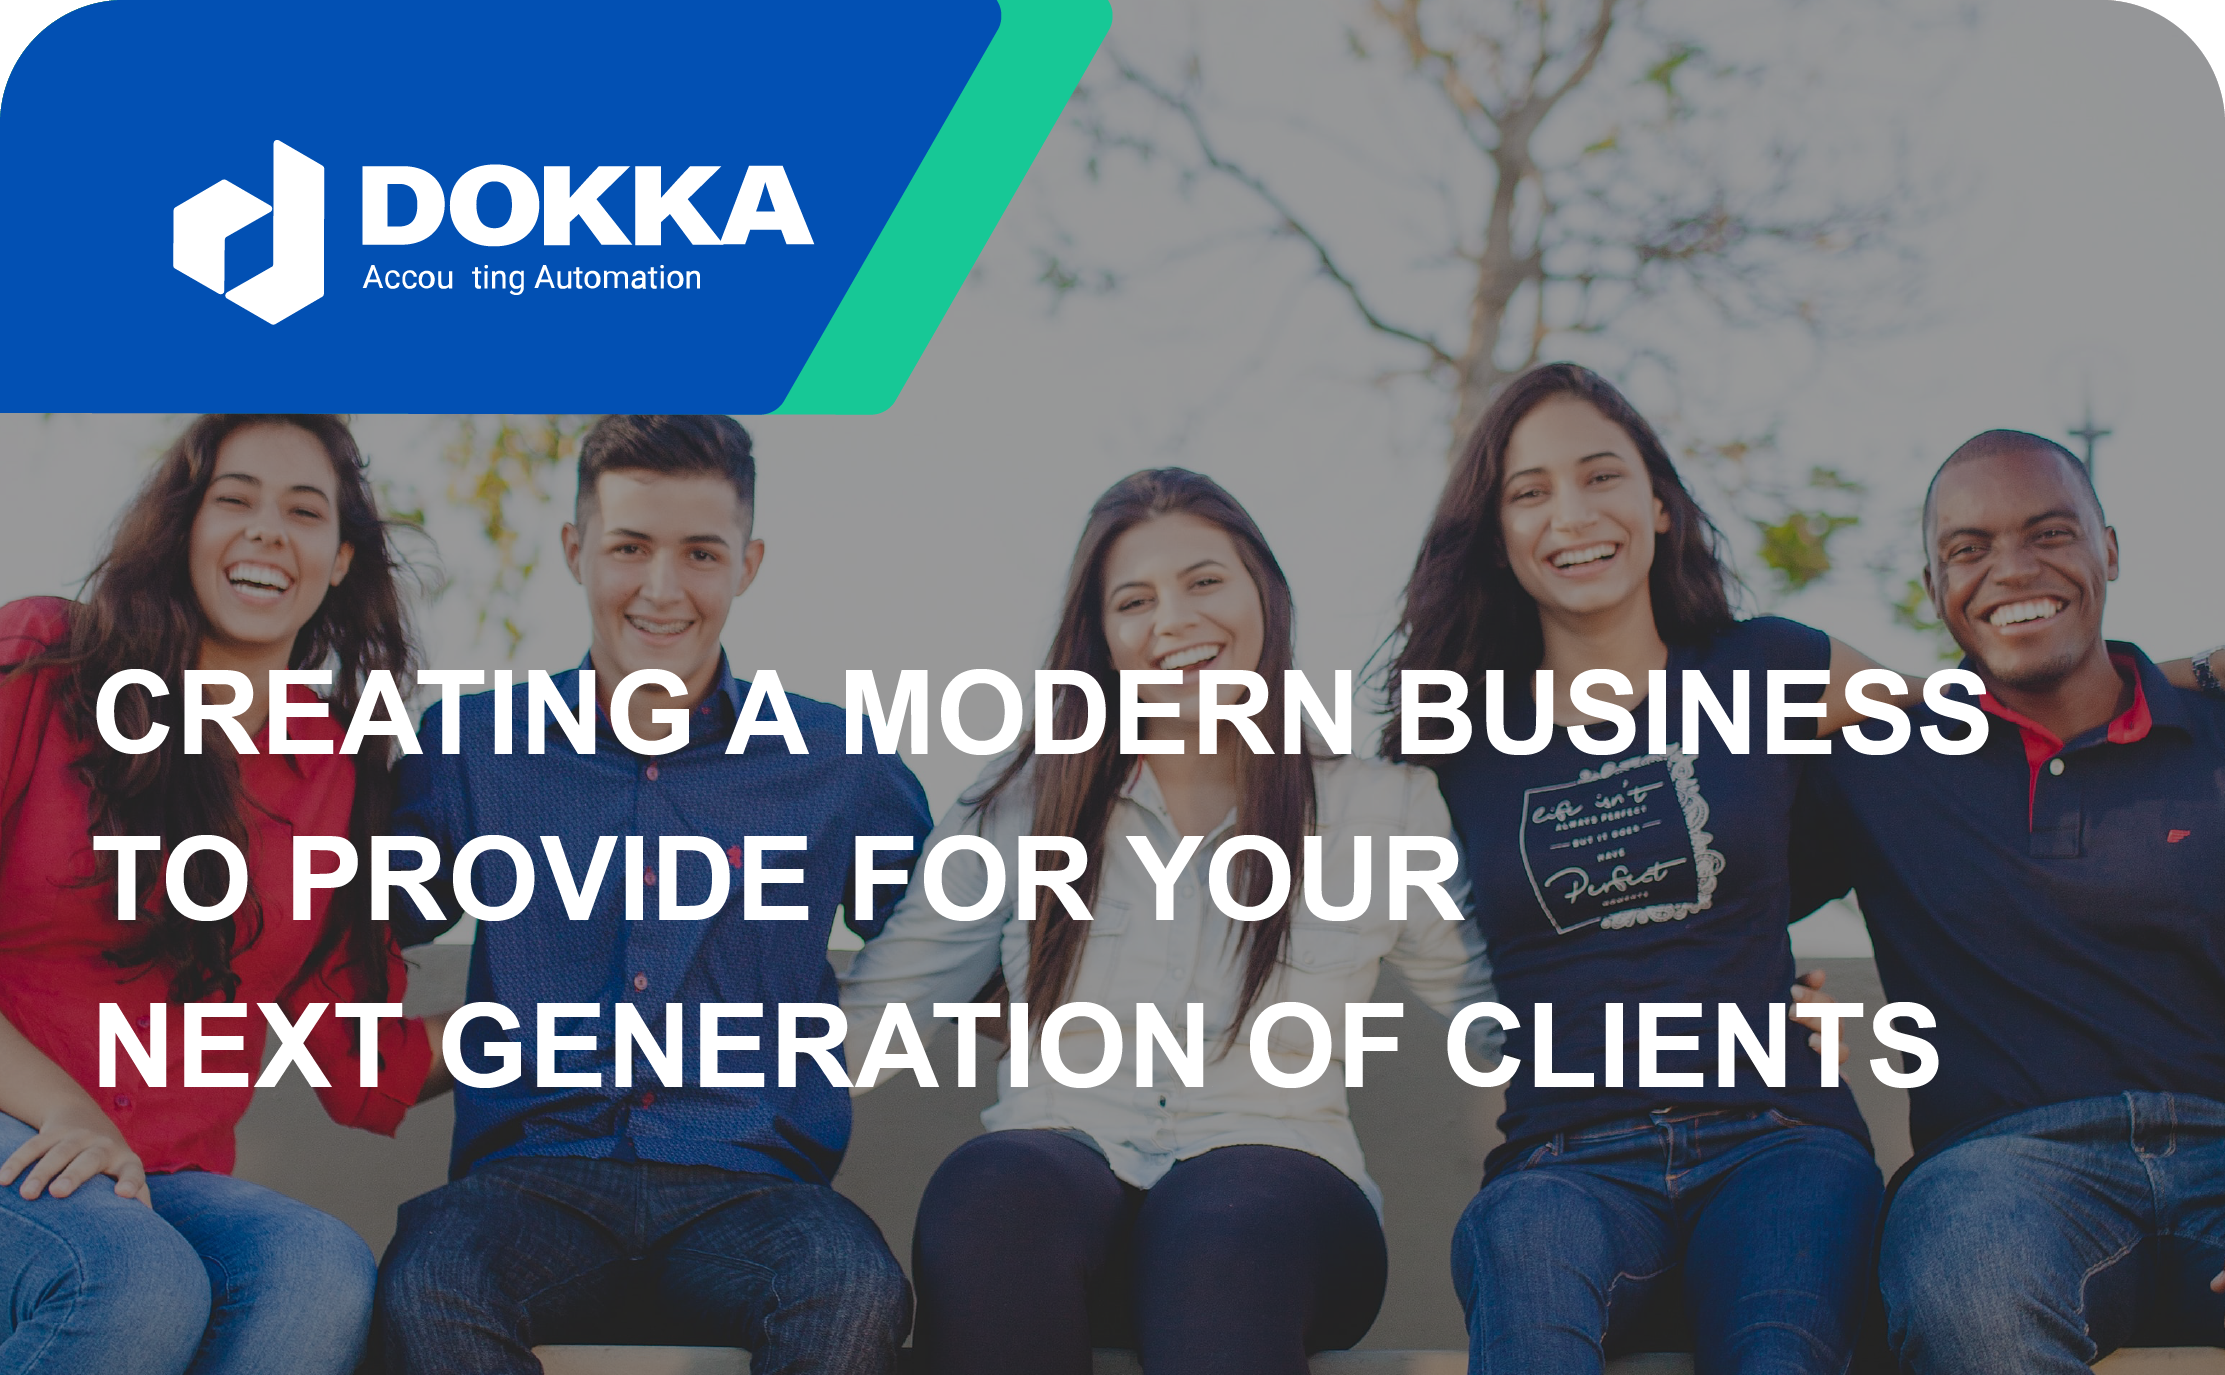 Creating a modern accounting and bookkeeping business to provide for your next generation of clients